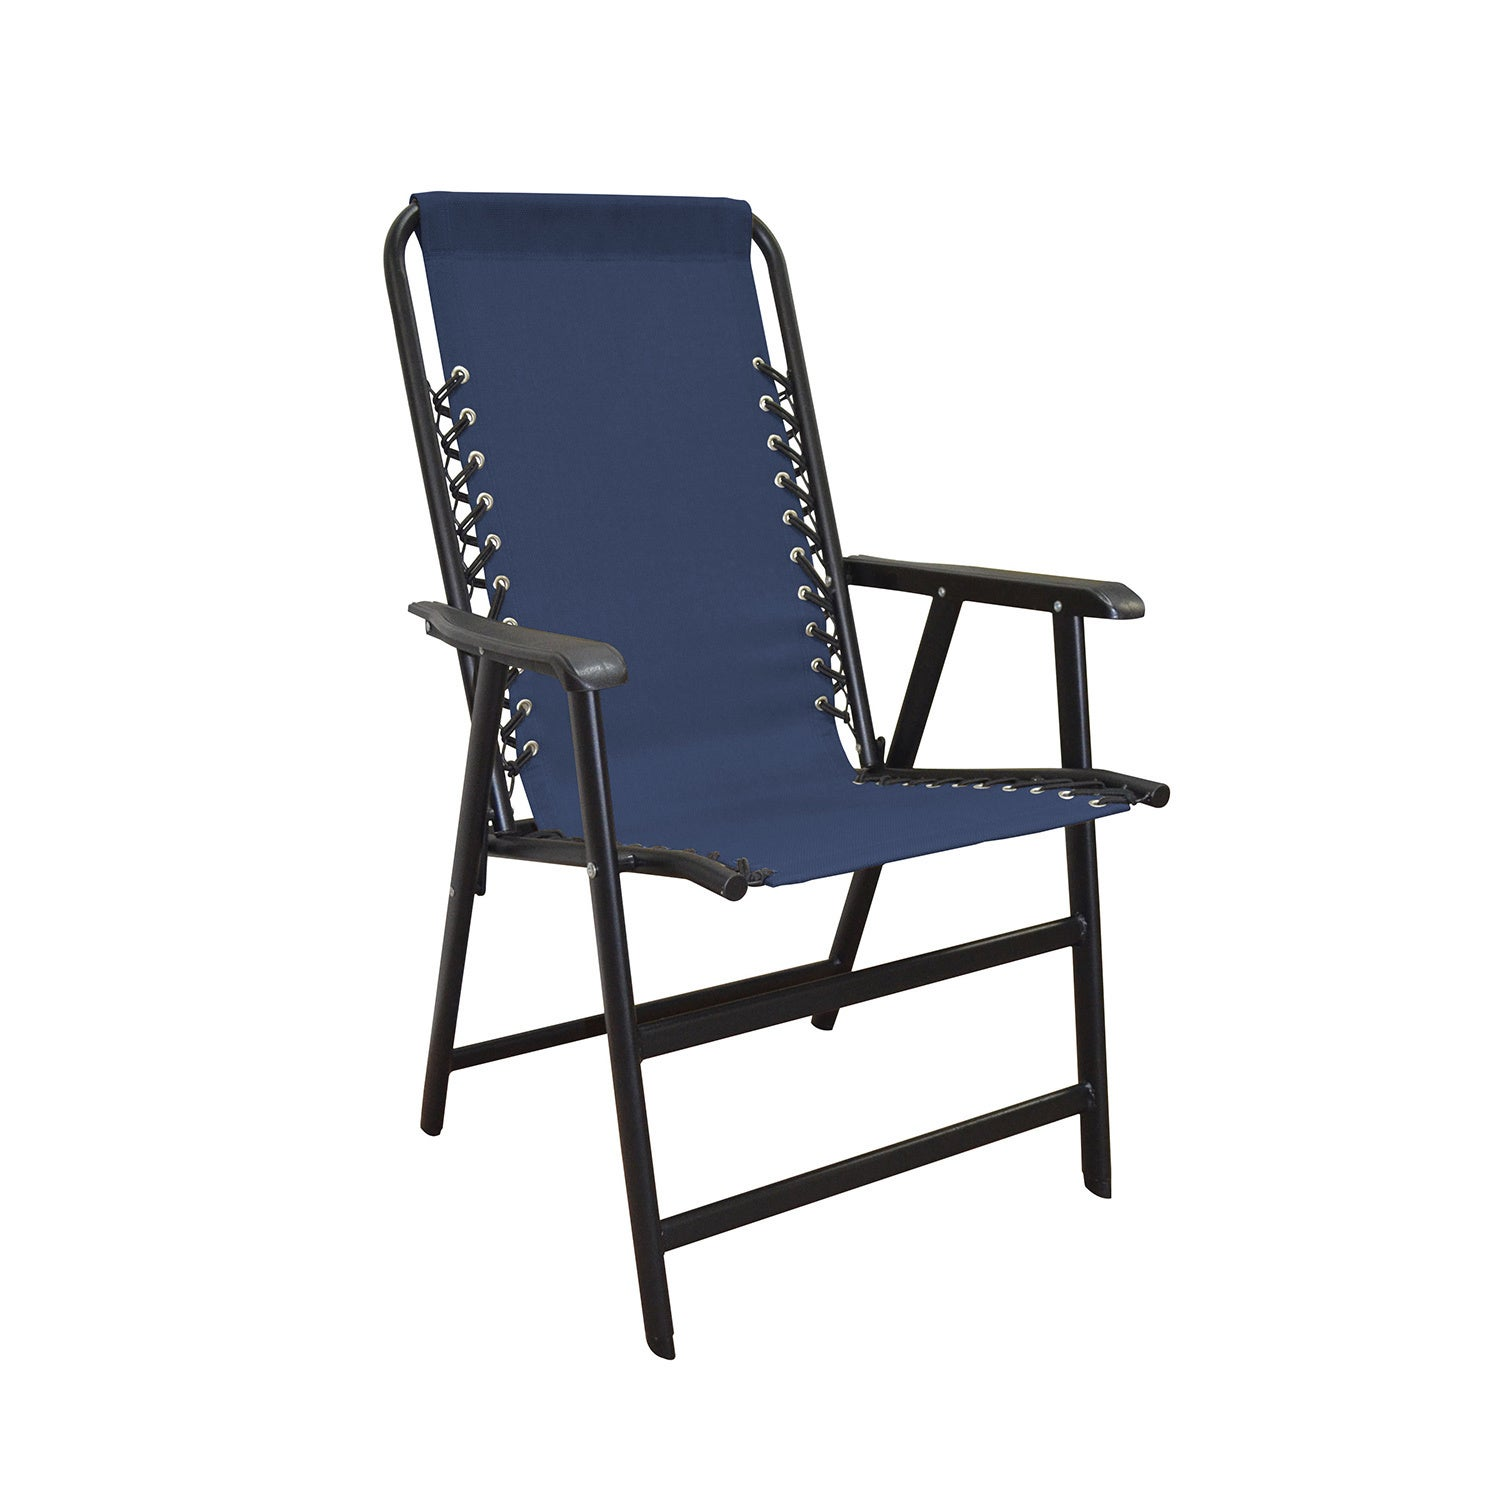 Caravan Canopy Blue Suspension Folding Chair Free Shipping Today